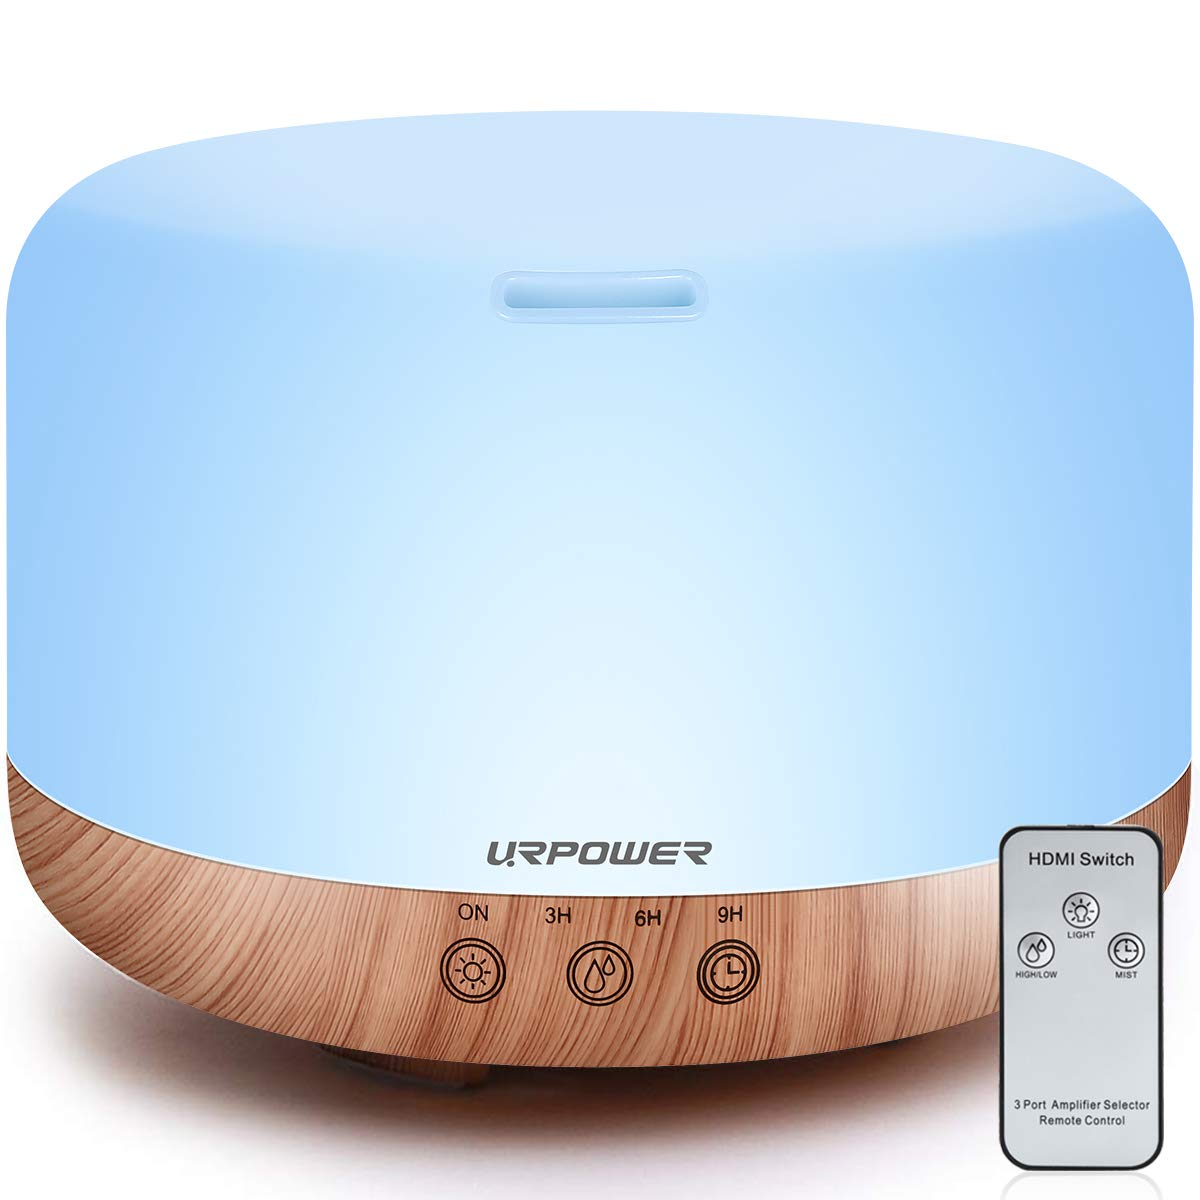 URPOWER Colorful OD-A002 Humidifier Diffuser